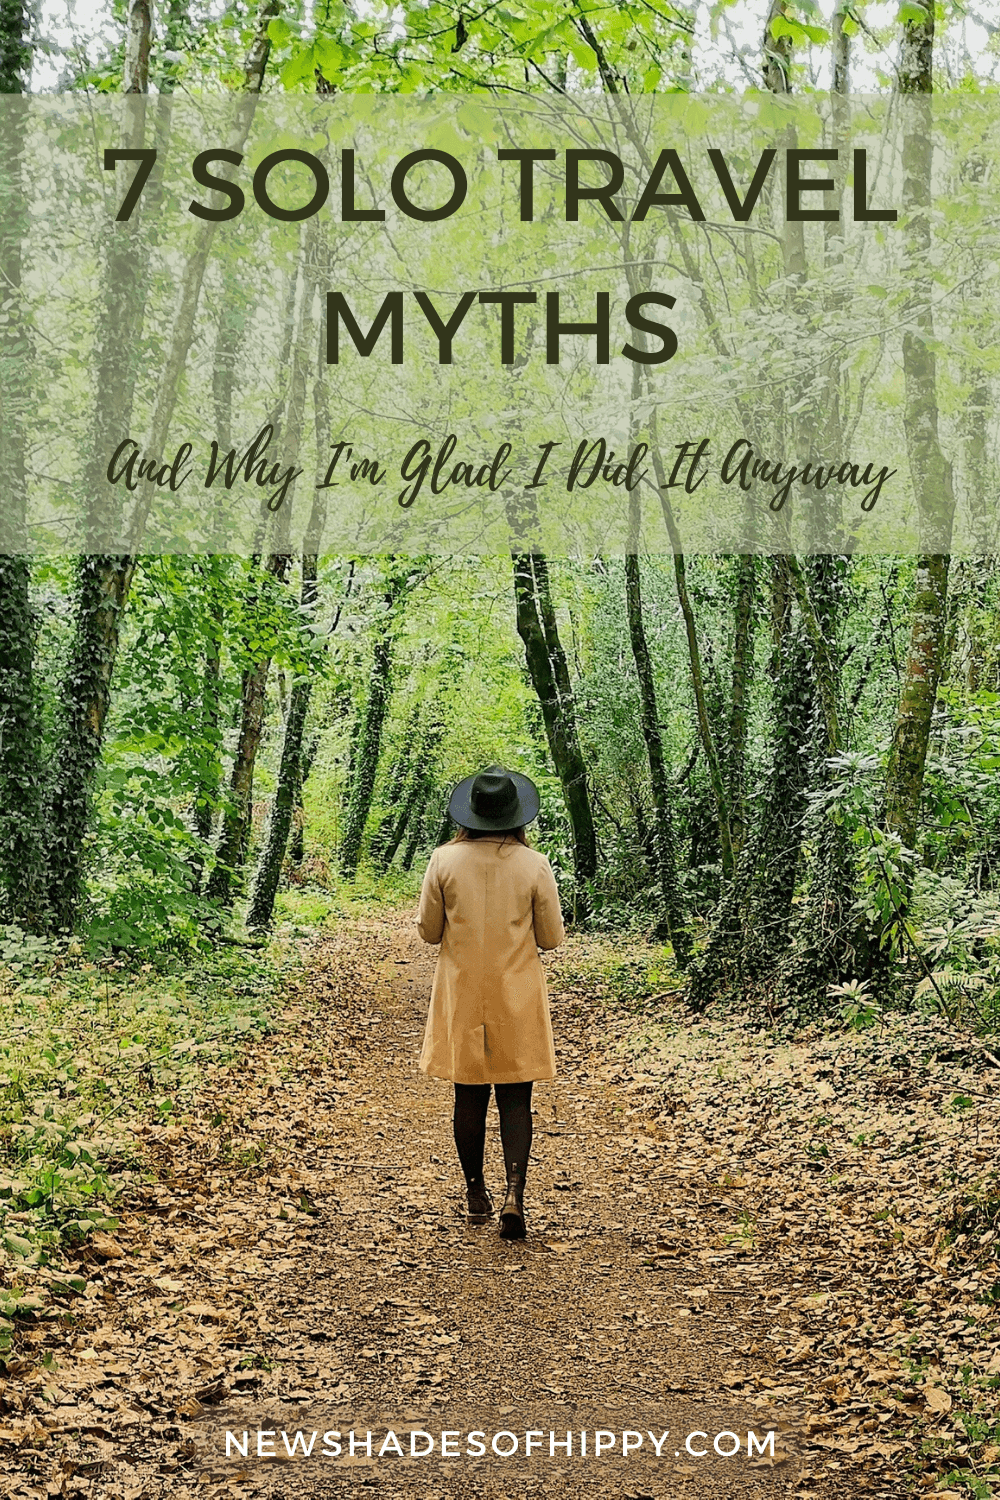 New Shades of Hippy Pinterest - Anneka Nicholls - travel blog and green living - 7 Solo Travel Myths